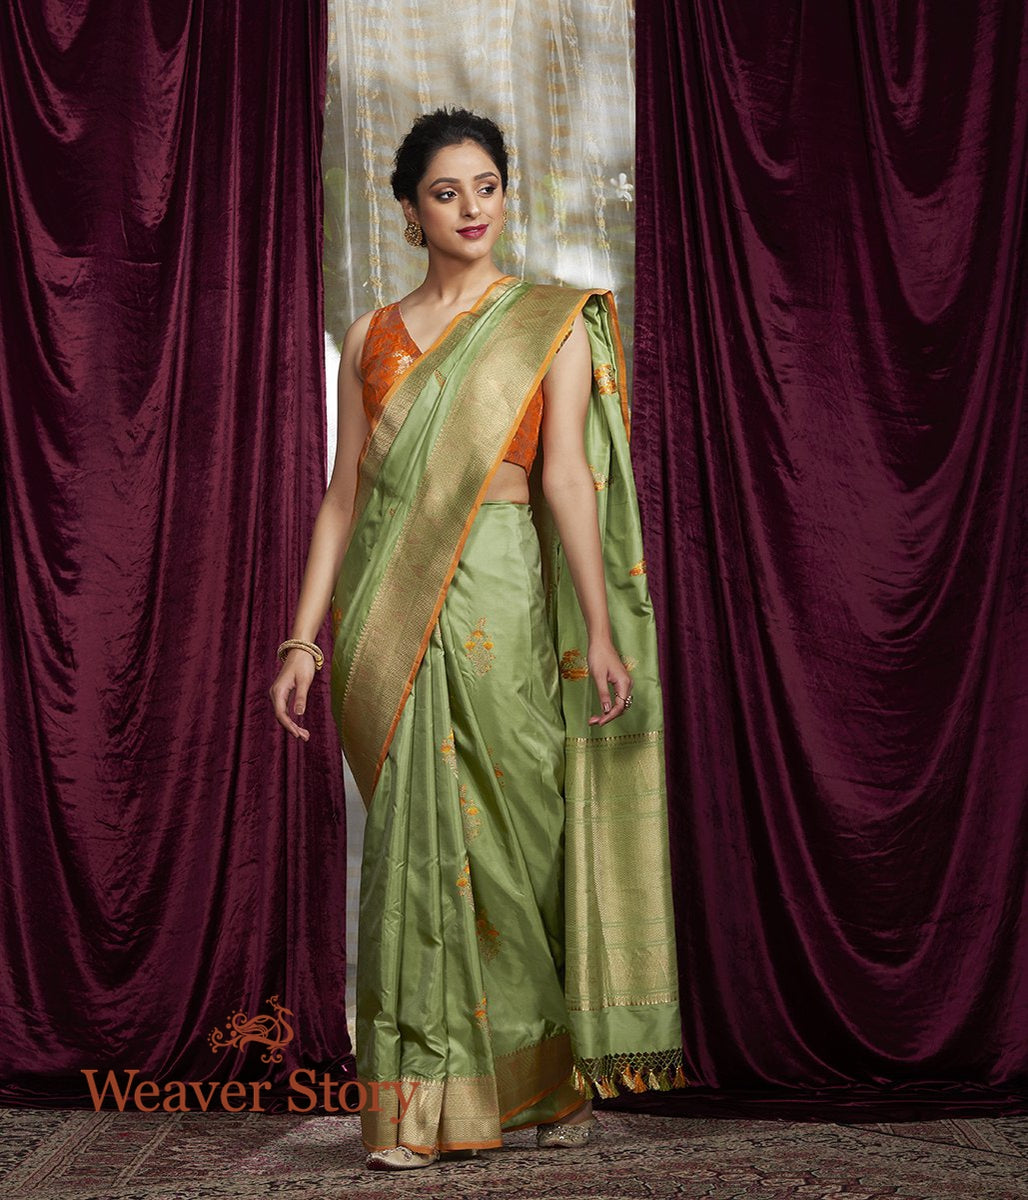 Handwoven Pista Green Katan Silk Saree with Meenakari Boota